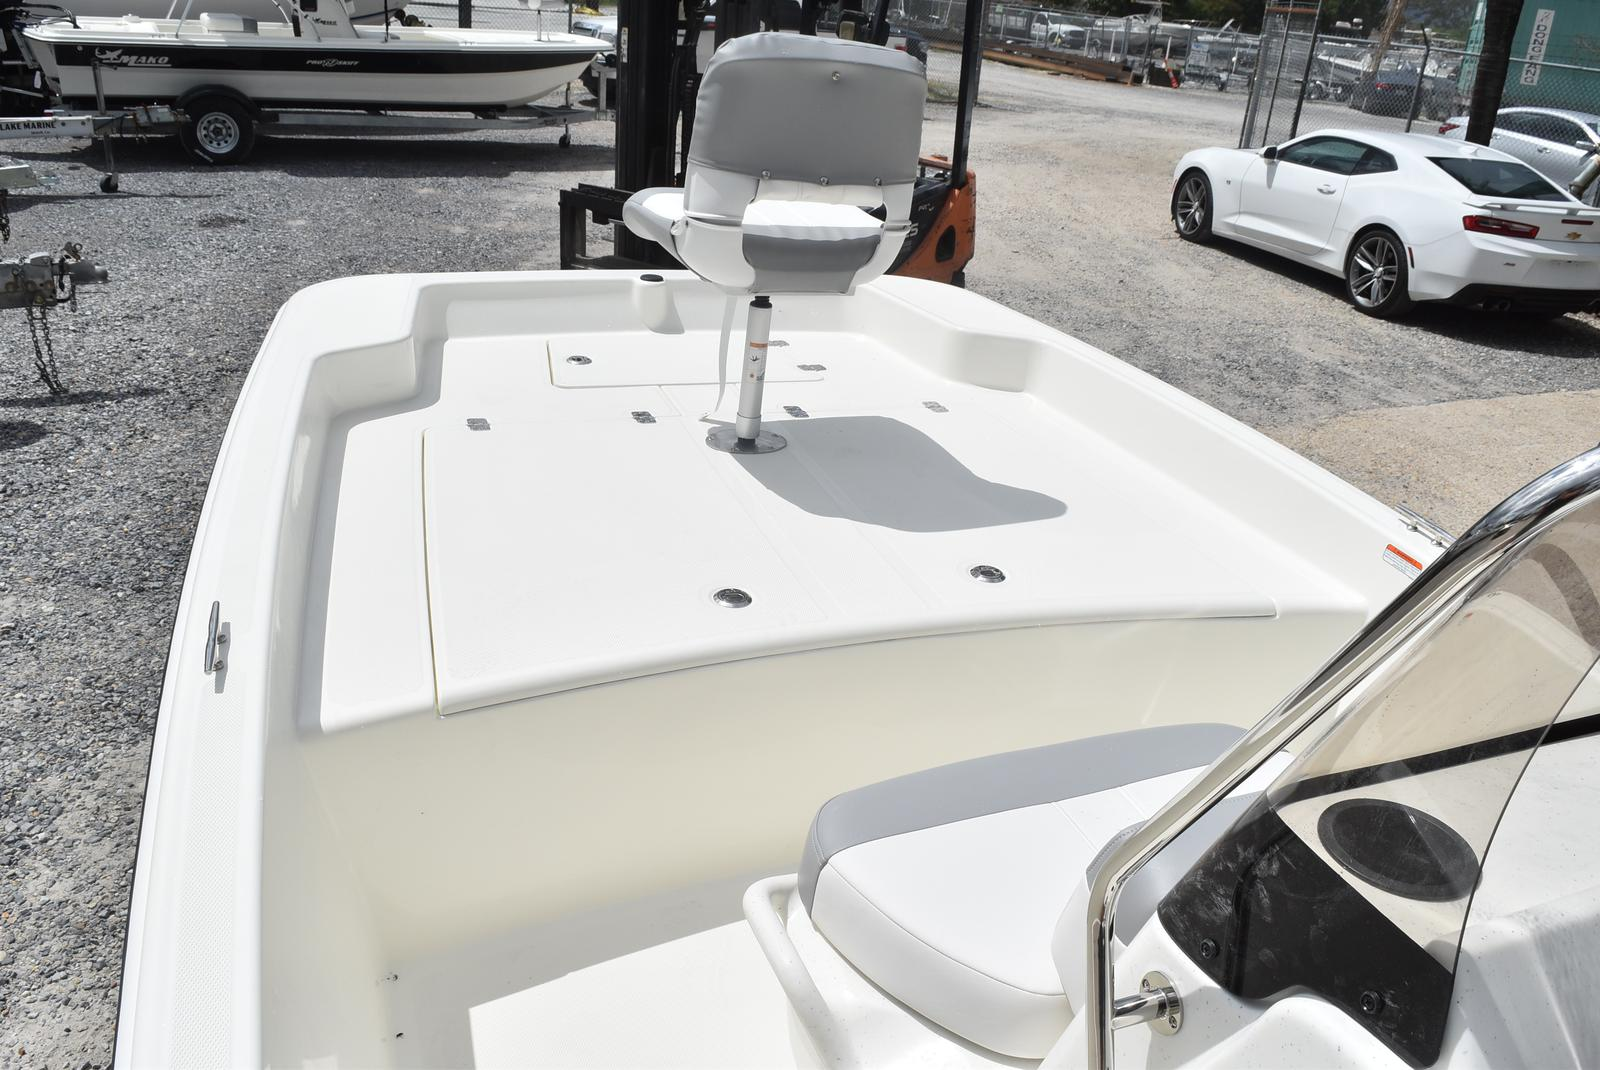 2020 Mako boat for sale, model of the boat is Pro Skiff 17, 75 ELPT & Image # 415 of 702